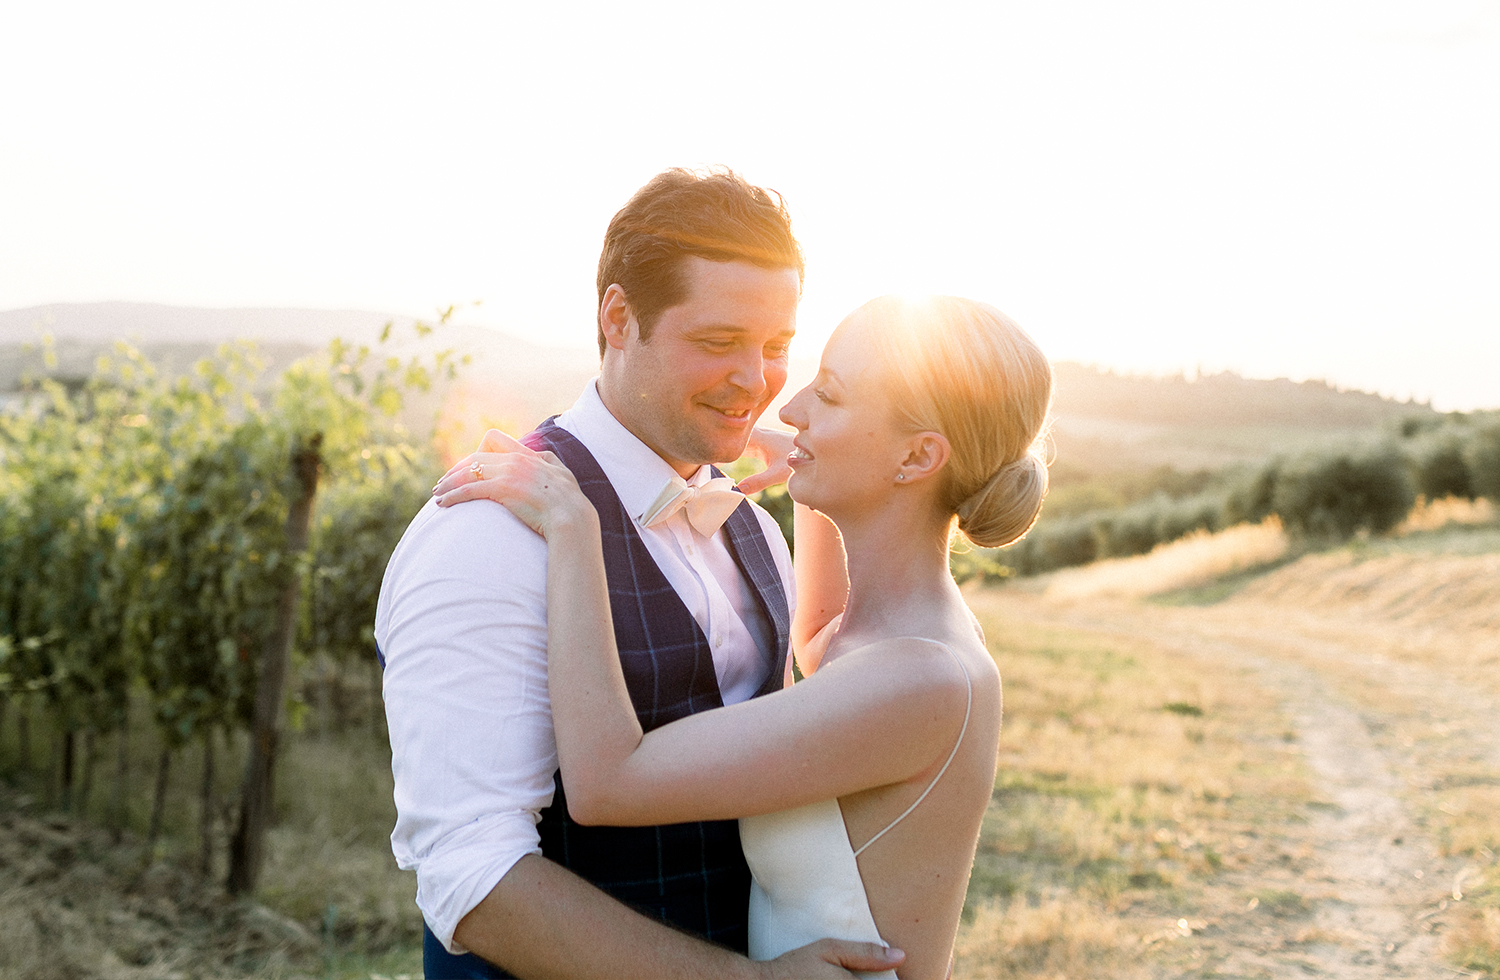 DESTINATION VINEYARD WEDDING IN TUSCANY SAN GIMIGNANO